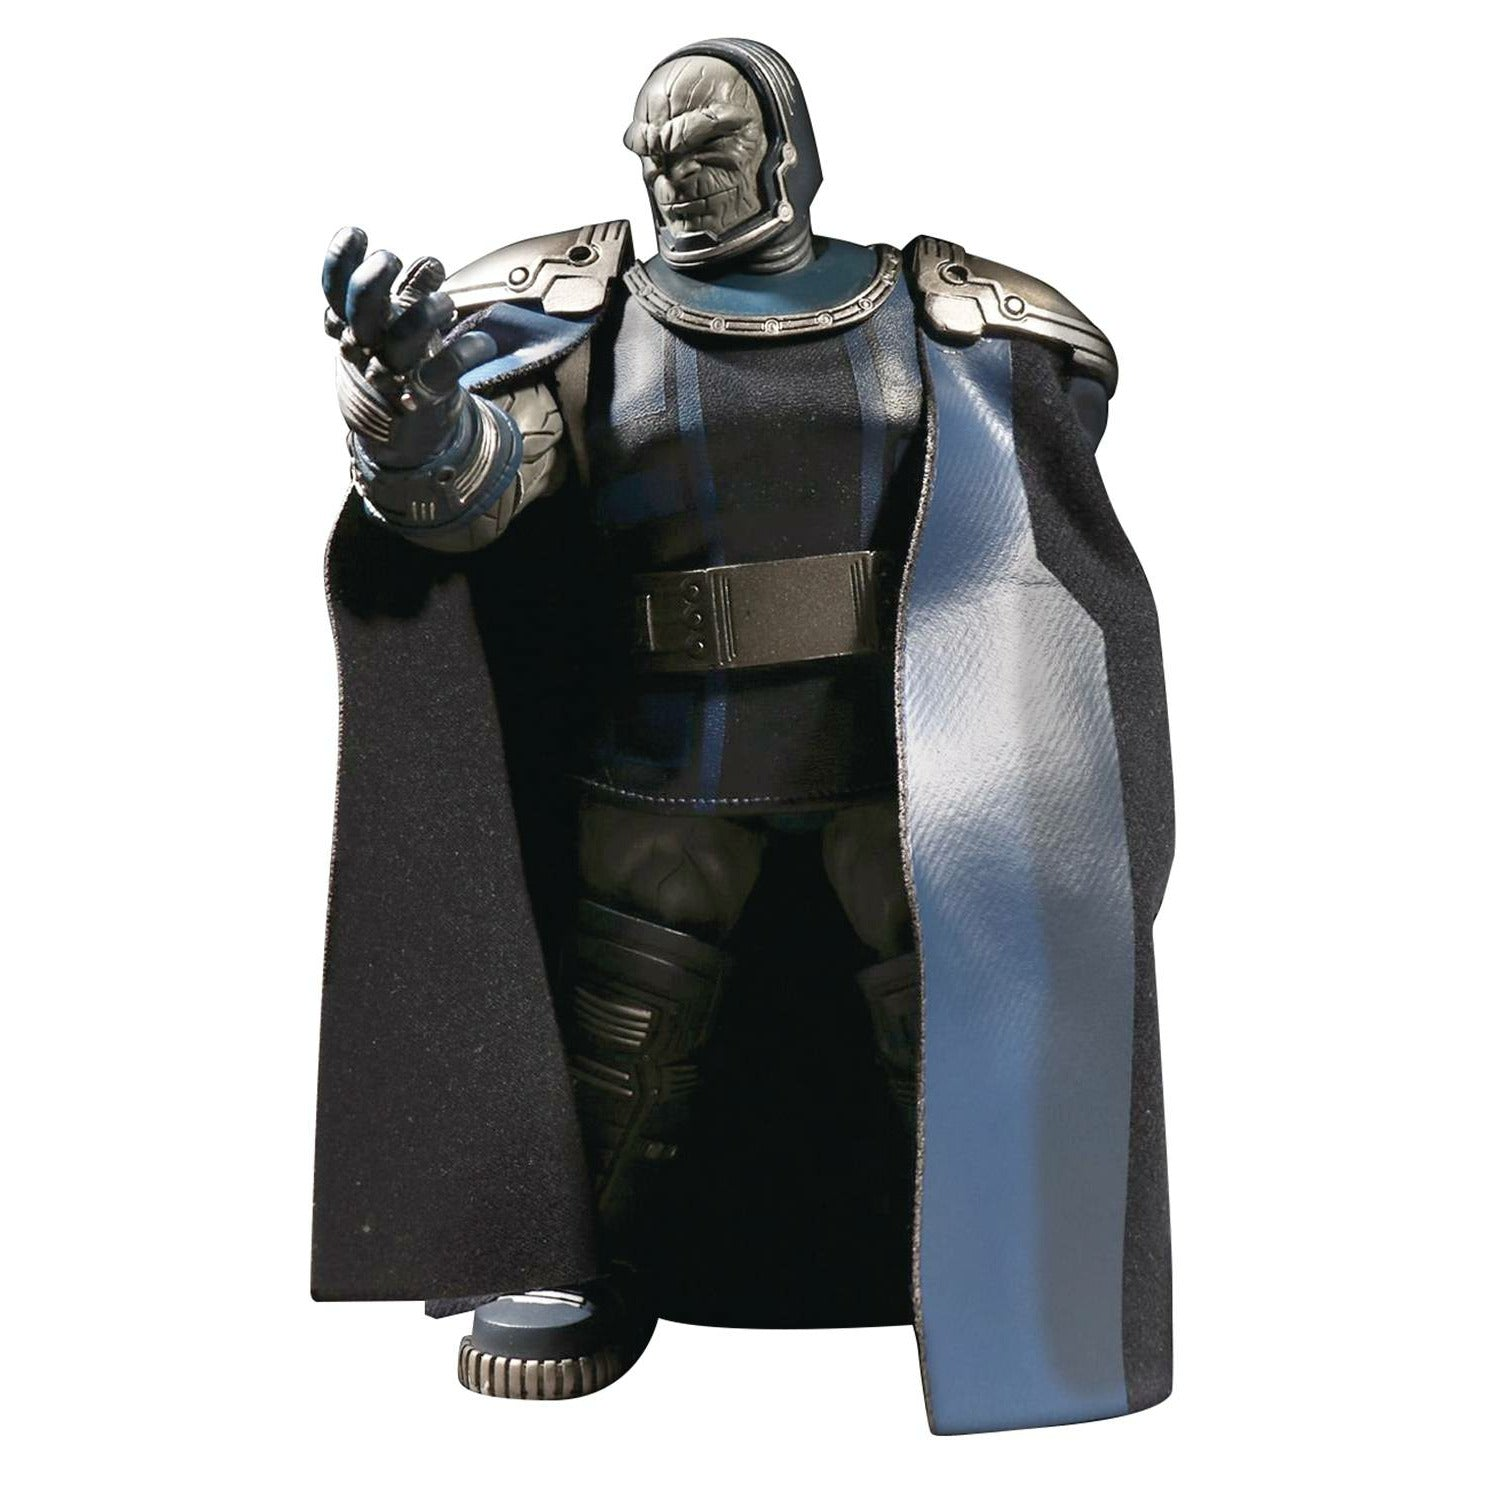 DC Comics Darkseid One:12 Collective 7 3/8 inch Action Figure